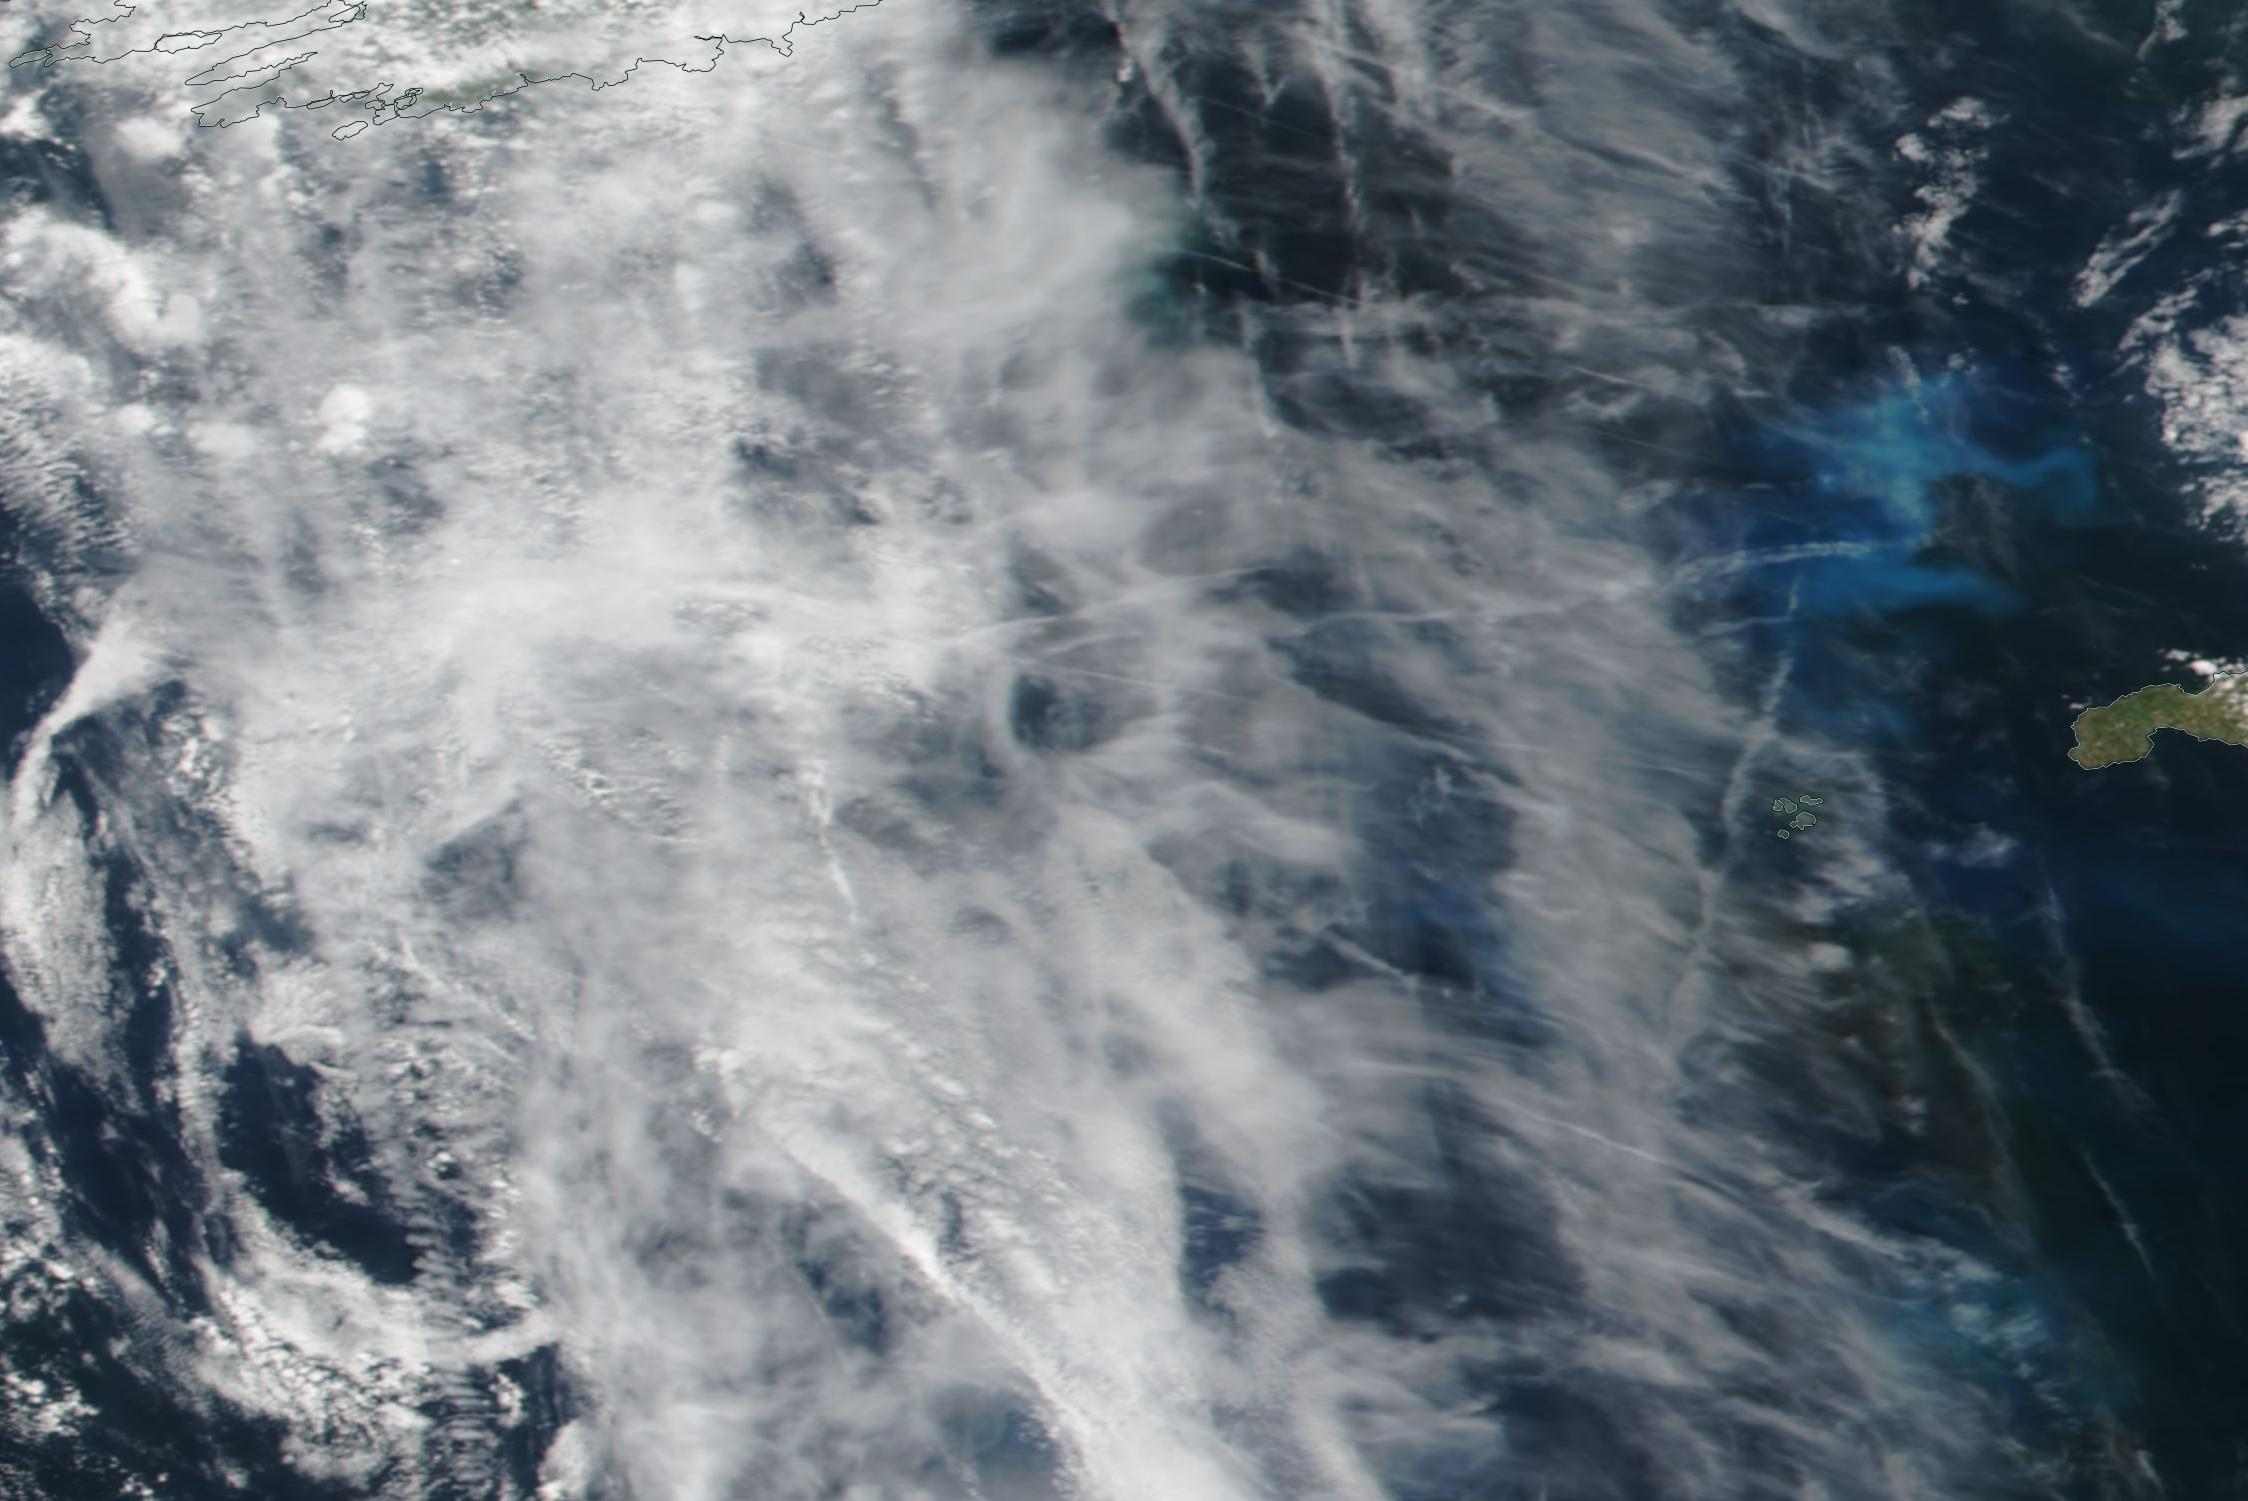 ditto using upper base layer on NASA worldview sea area Fastnet, Sole 15 july 2019 chemtrails south of Ireland ... https://go.nasa.gov/2l8Dt8t